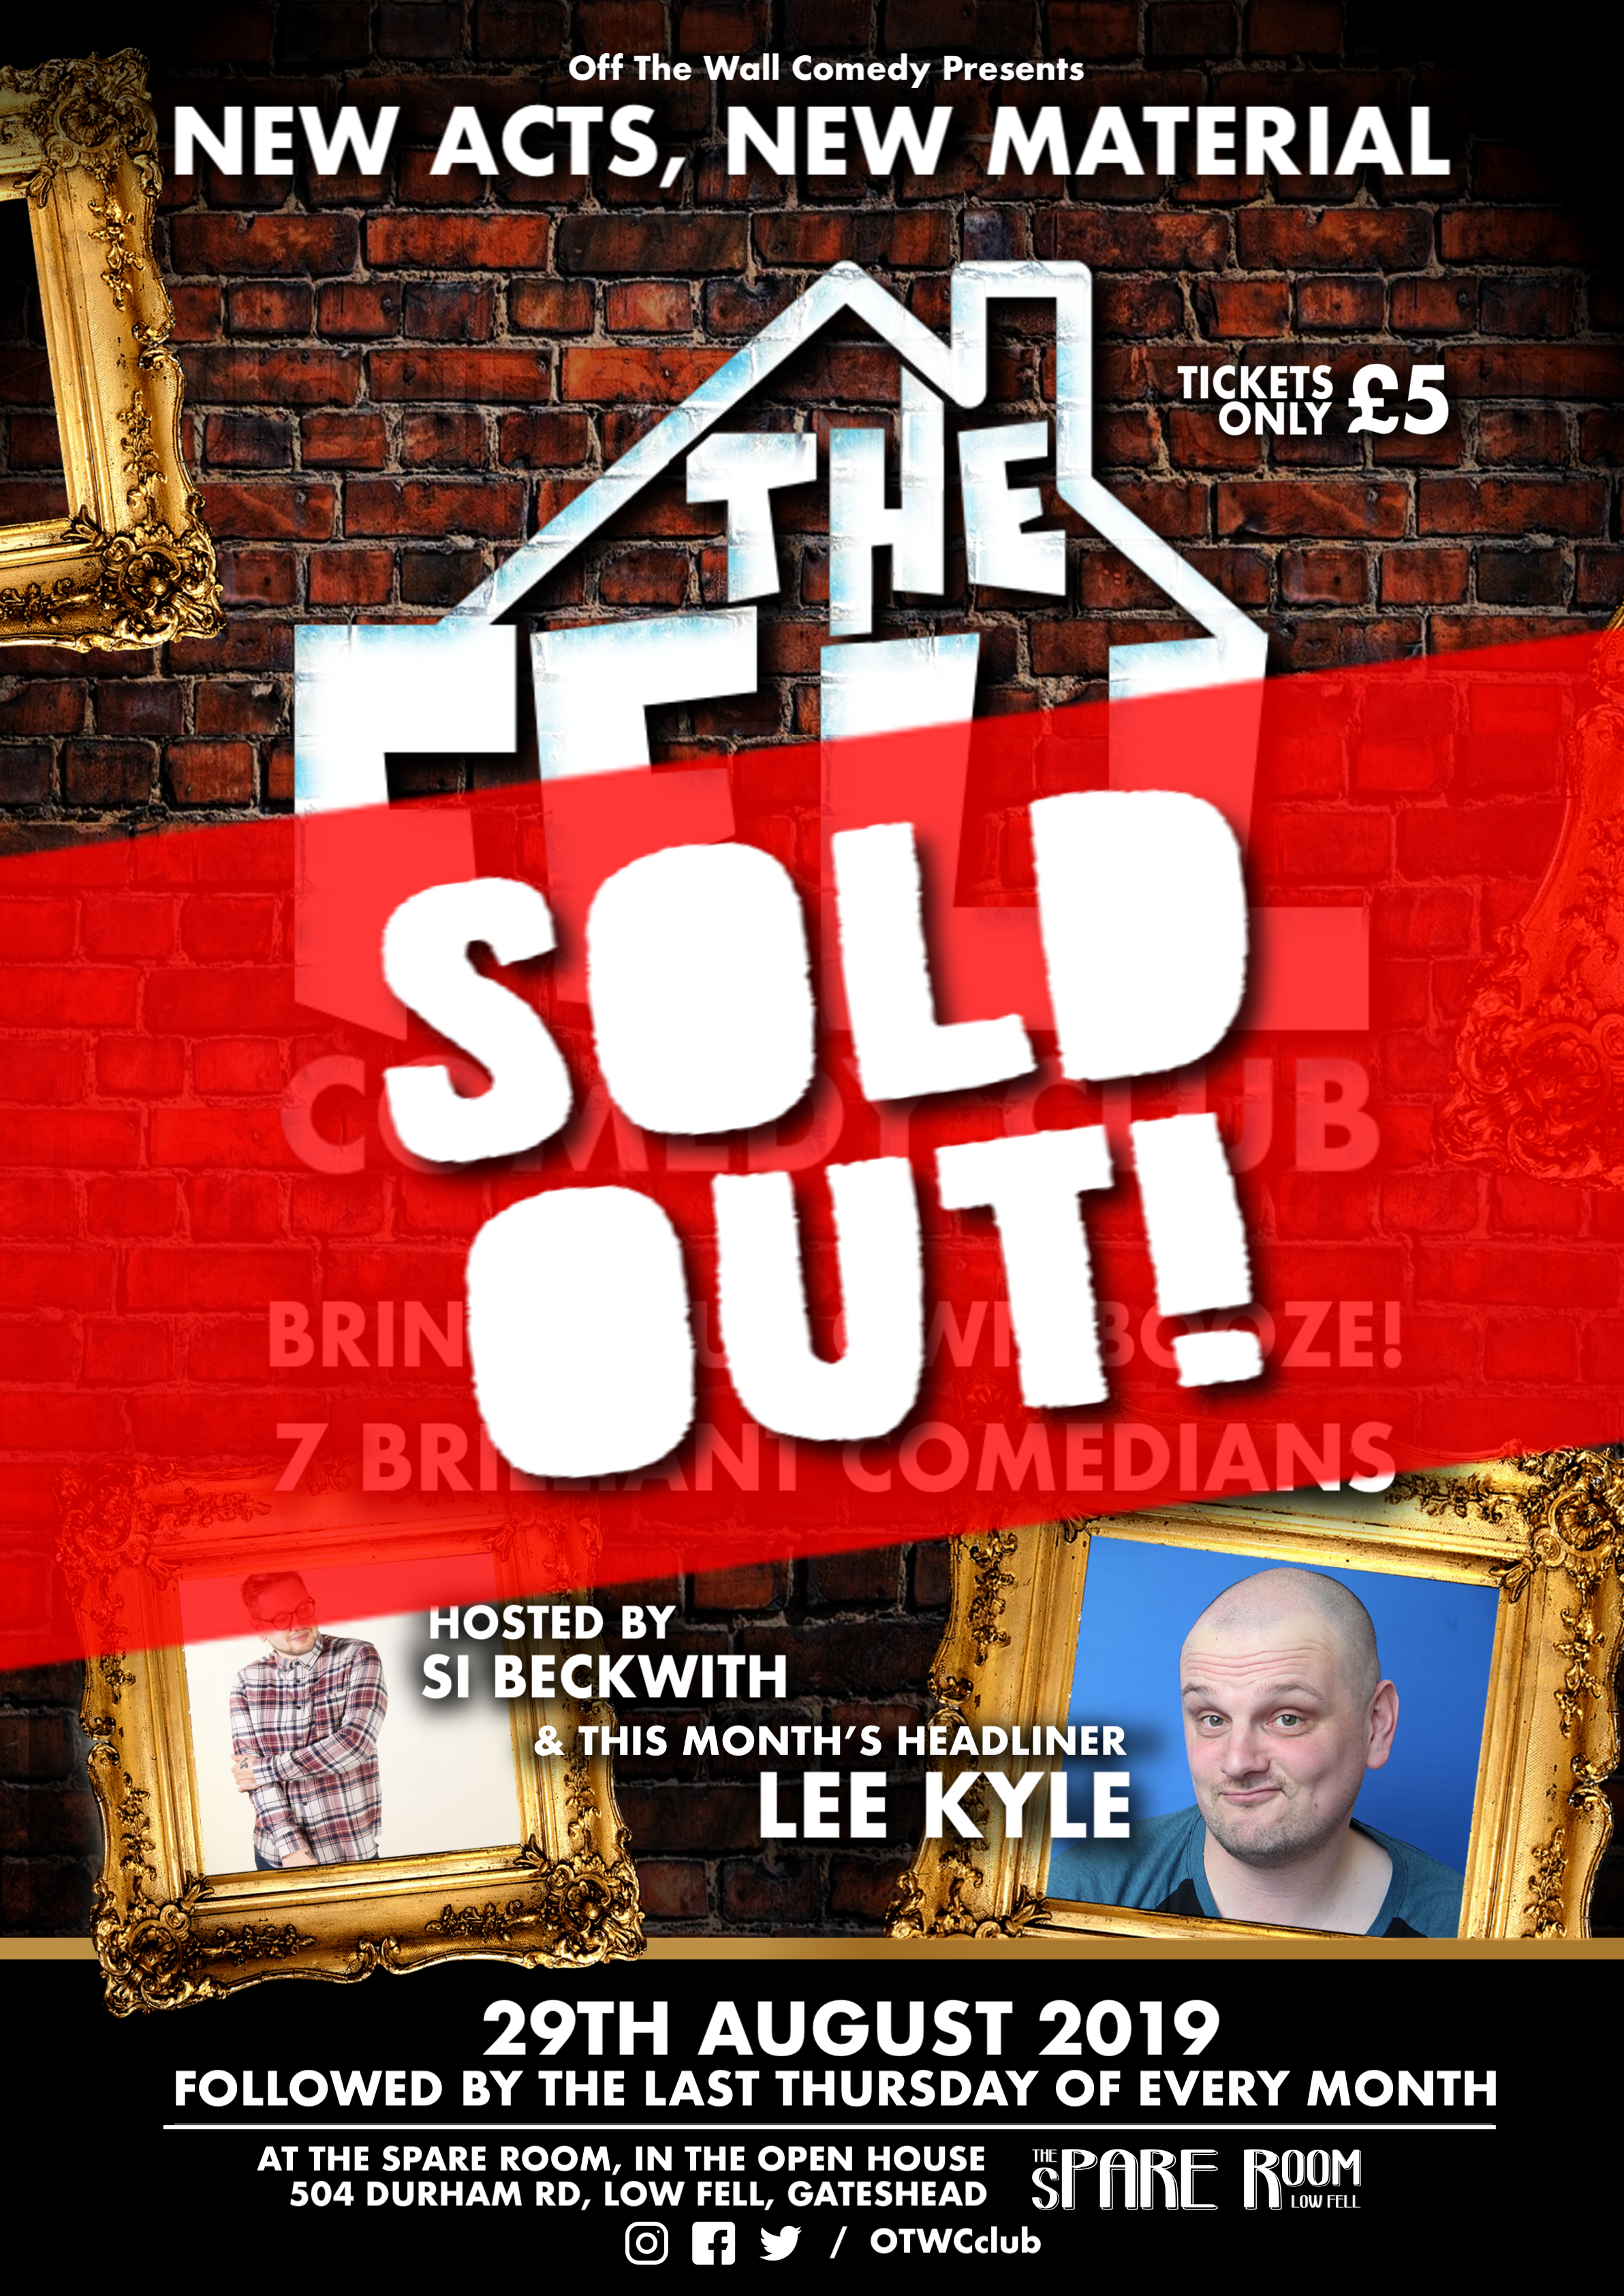 The fell comedy club poster sold